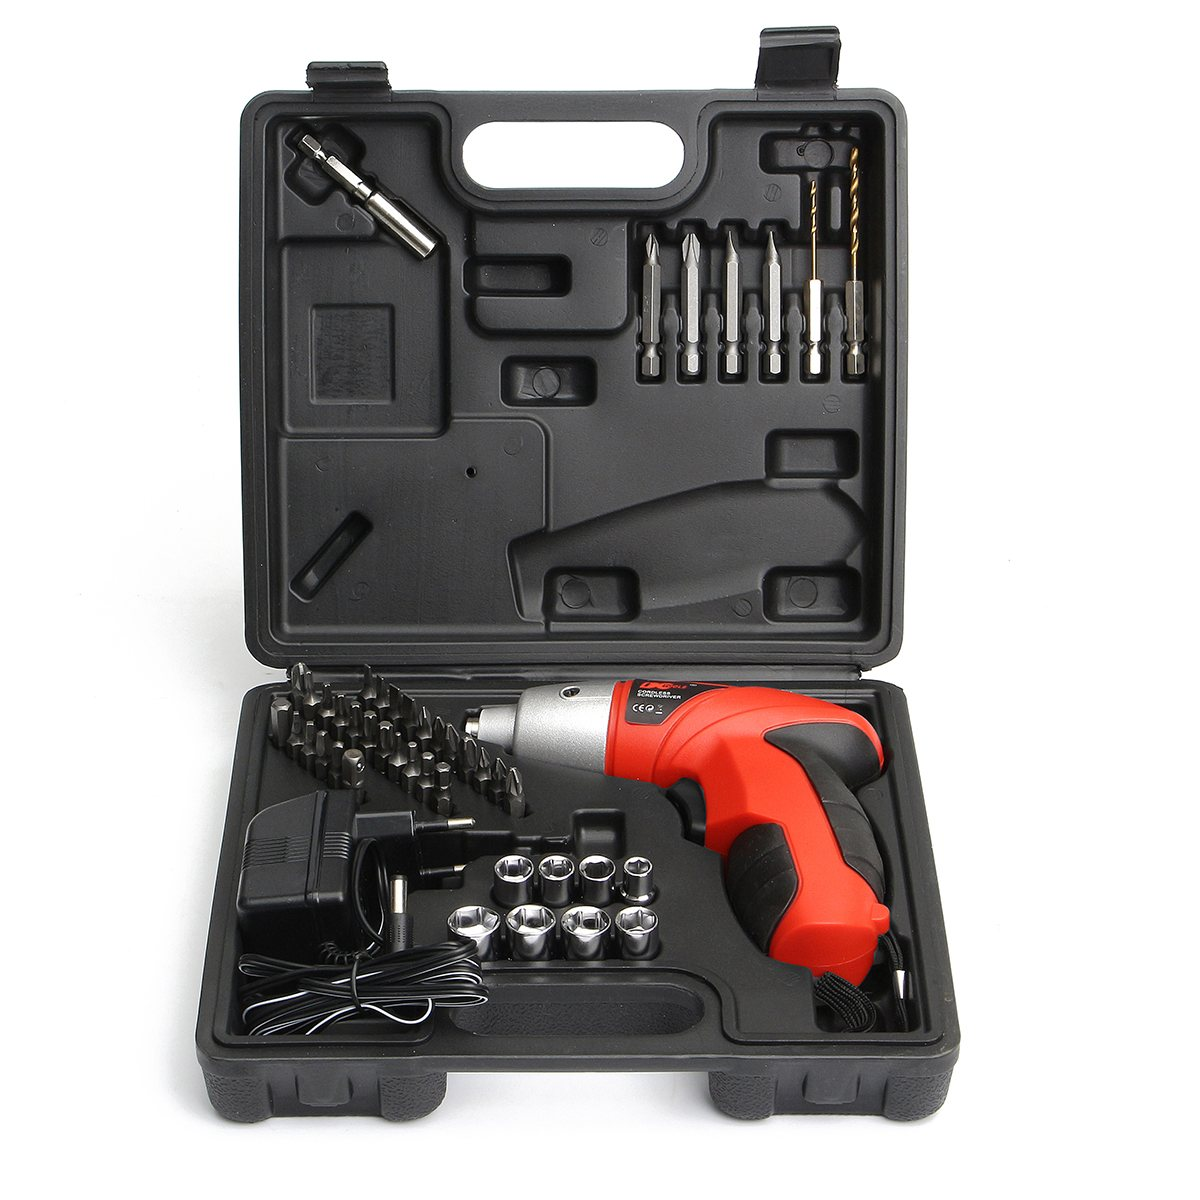 цена на 4.8V LED Screwdriver Battery Operated Cordless Power Electric Drill Driver Bits Electric Hand Drill Hole Eletric Power Tools